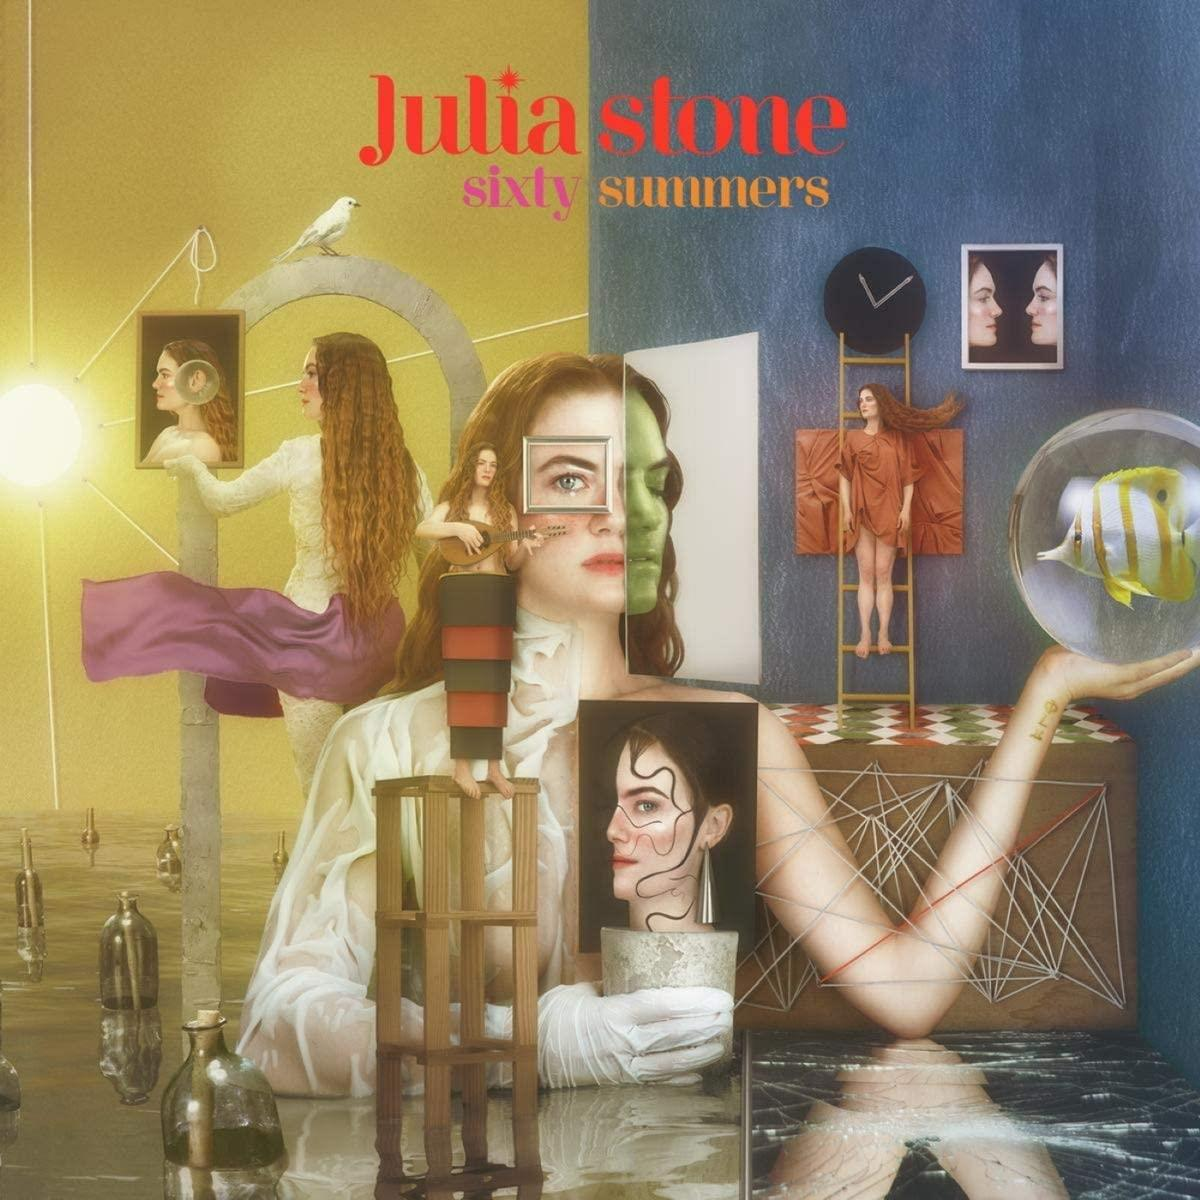 Julia Stone - Sixty Summers [LP]